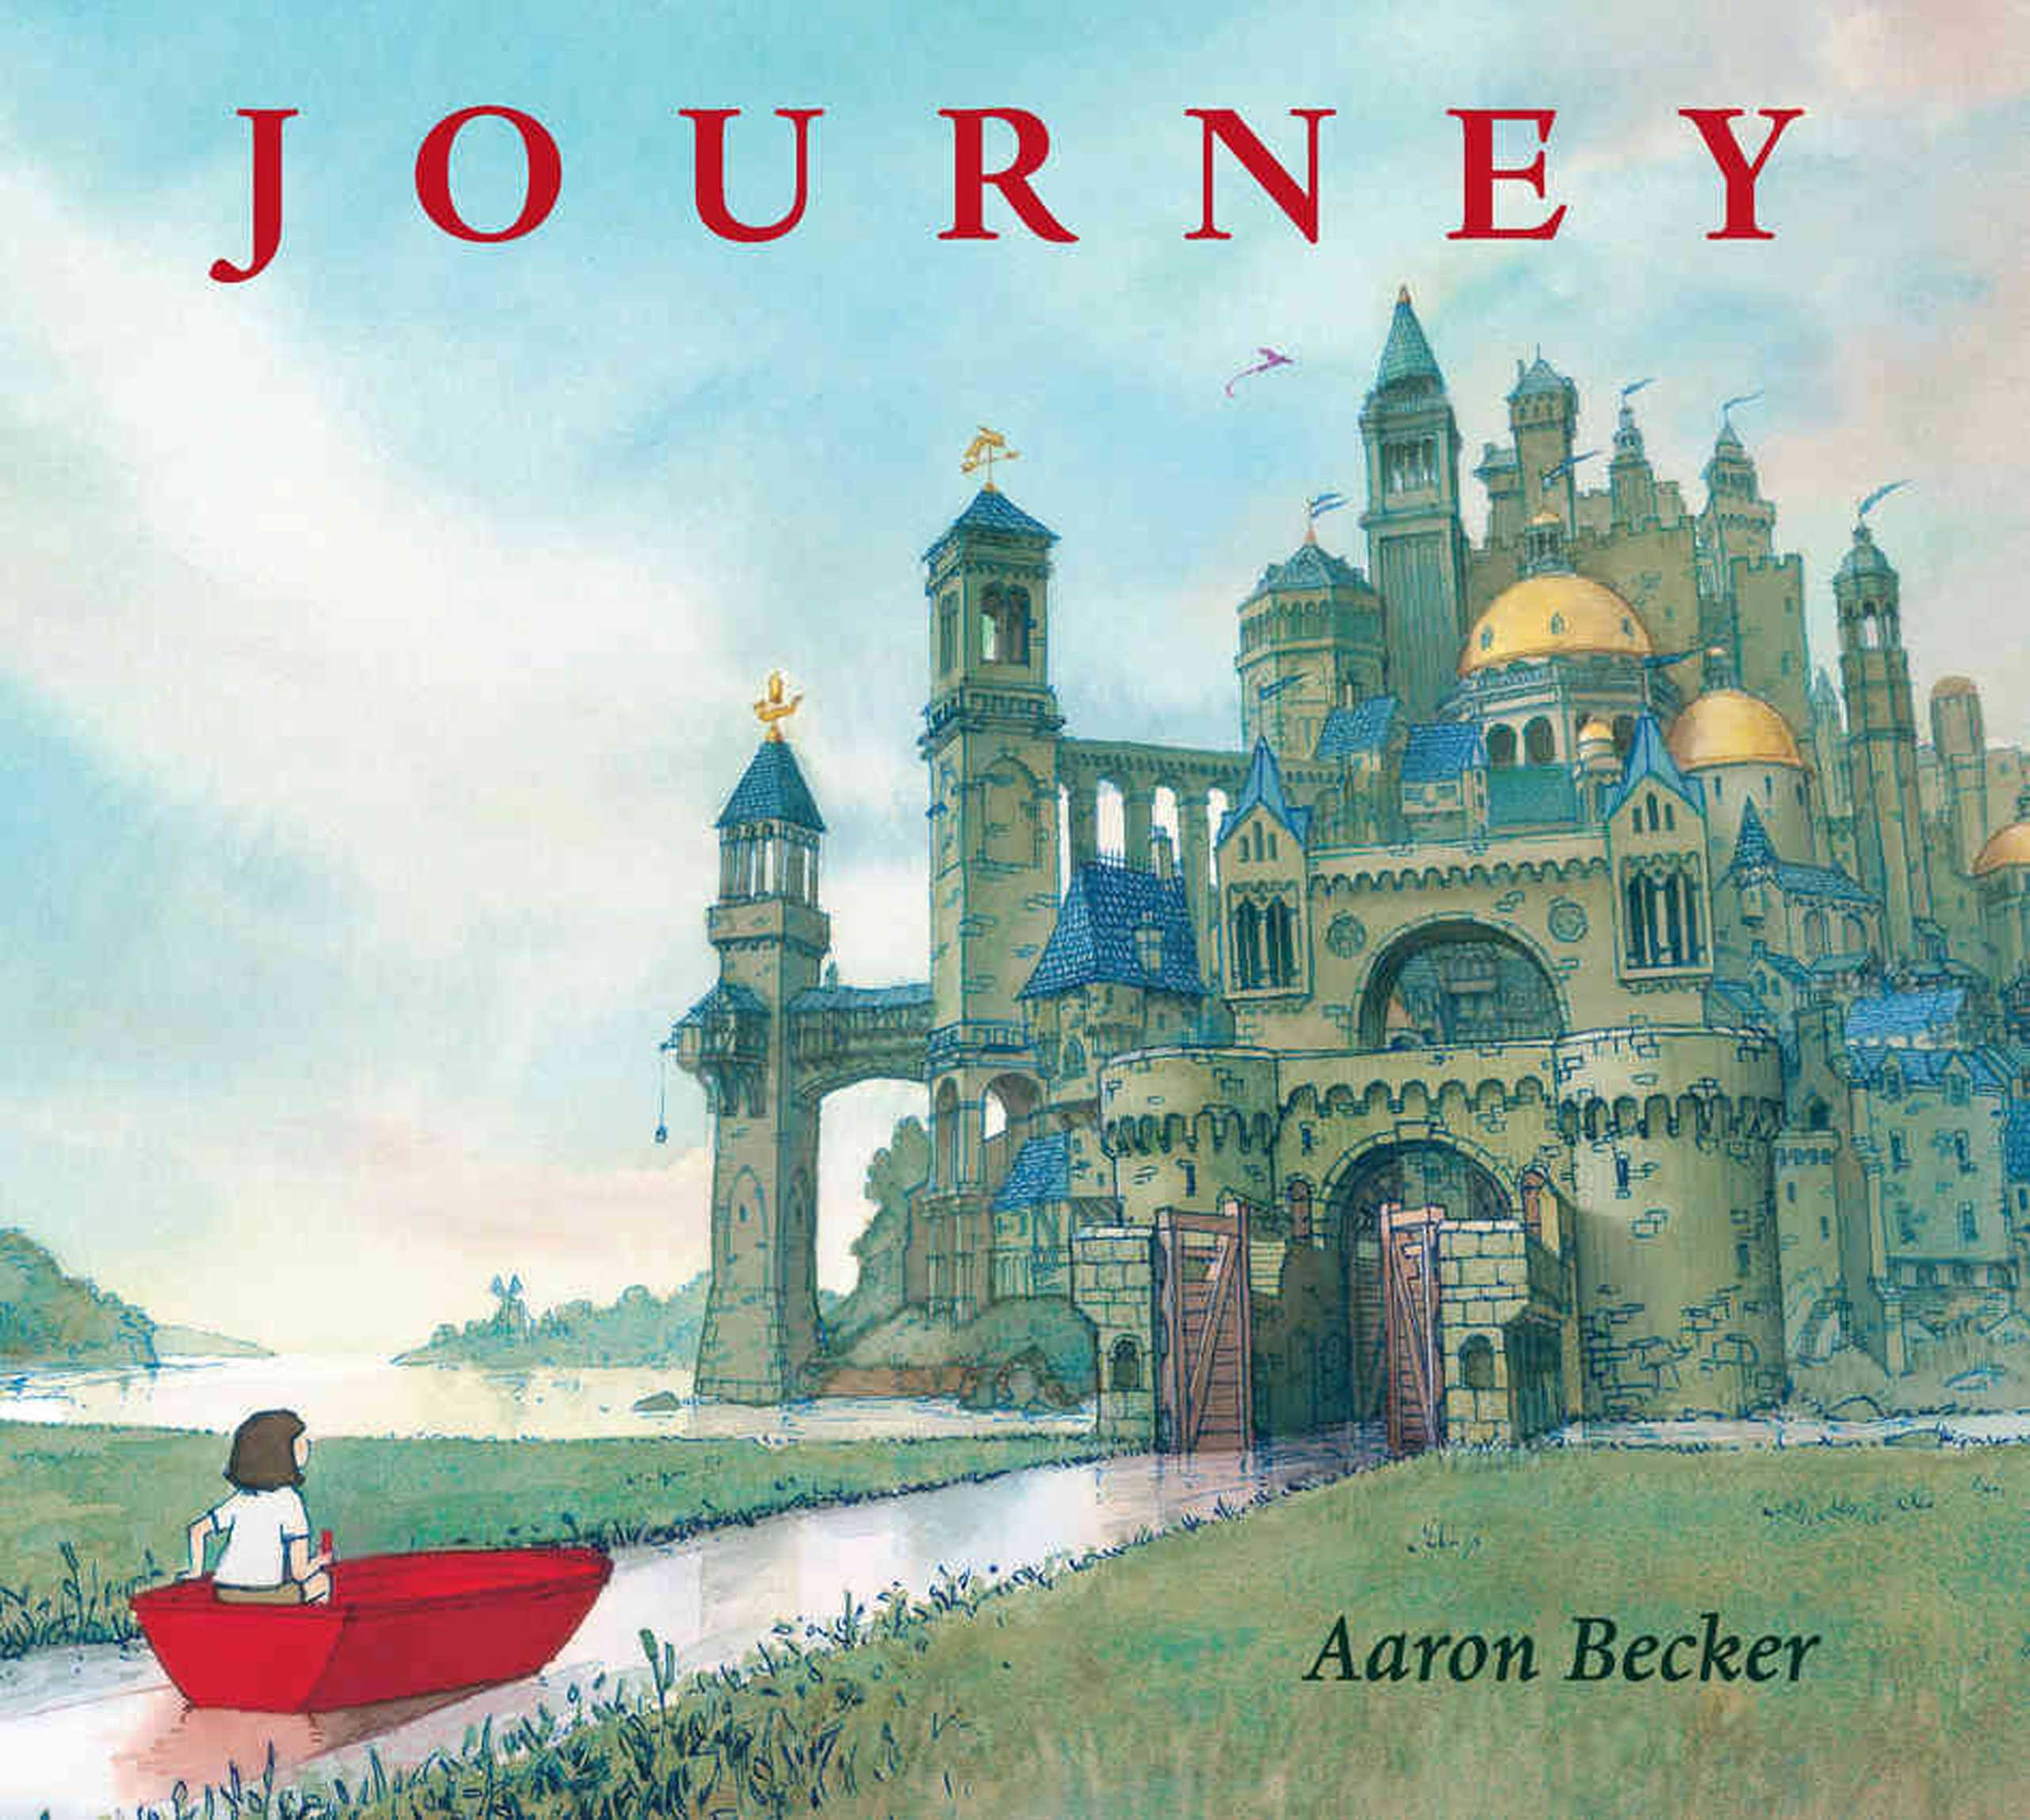 Journey, by Aaron Becker.                                                                                                                            A girl armed with a magic crayon draws to escape her boring, colorless world.                                                                                                                            Buy now: Journey